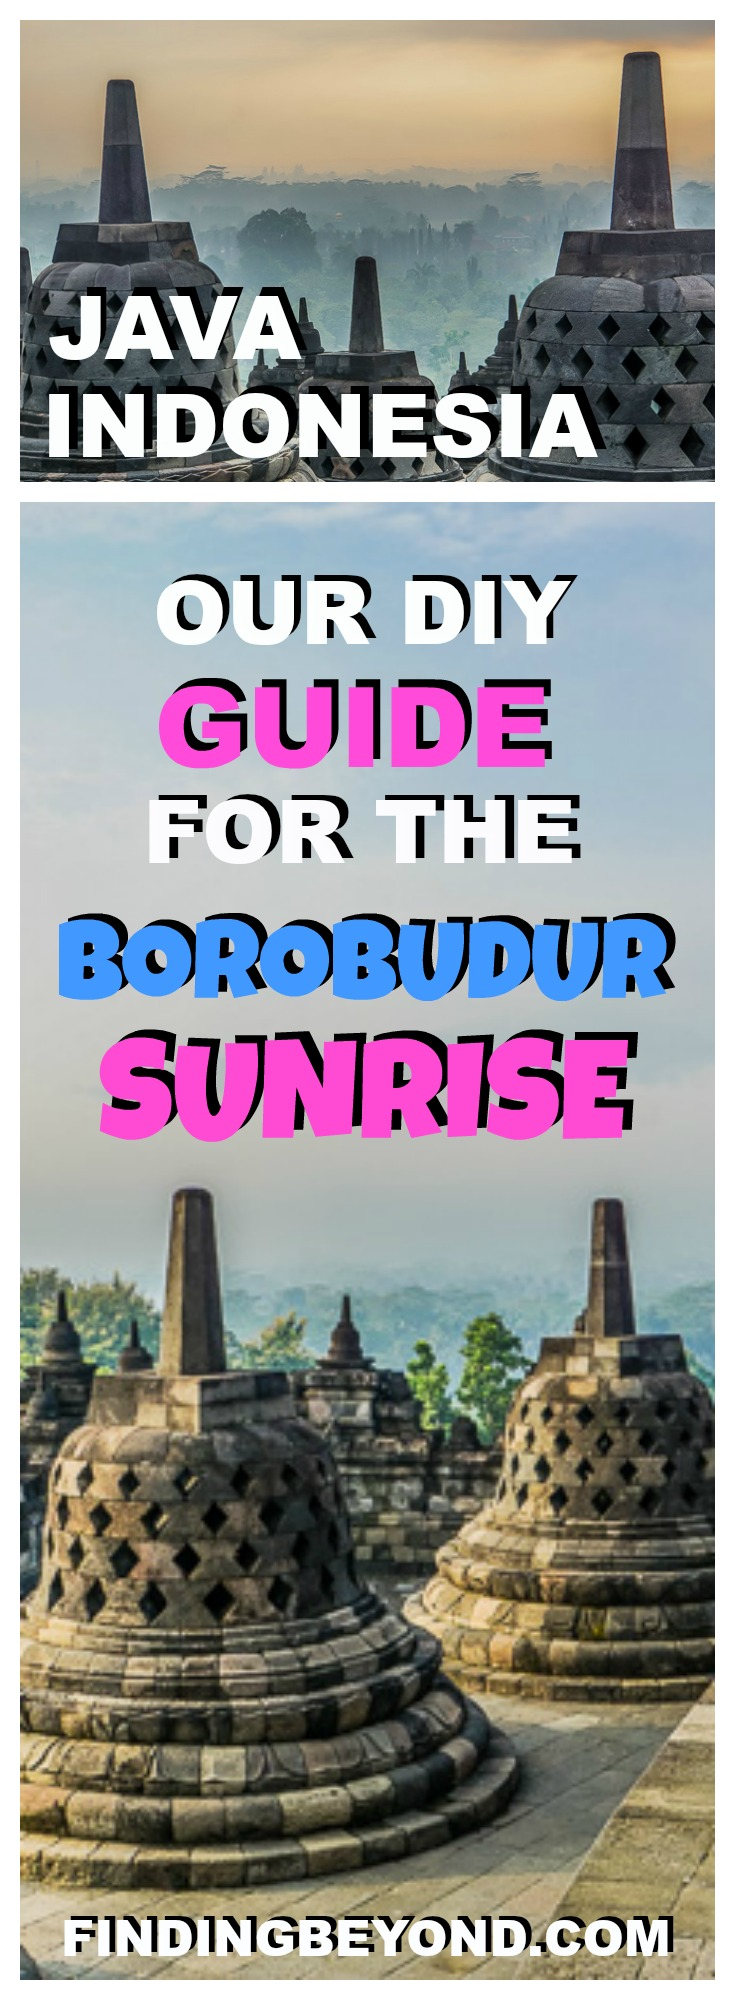 Watching the sun rise over the Temple of Borobudur is a trip to Java highlight. Avoid expensive tours and follow our Borobudur sunrise DIY guide.